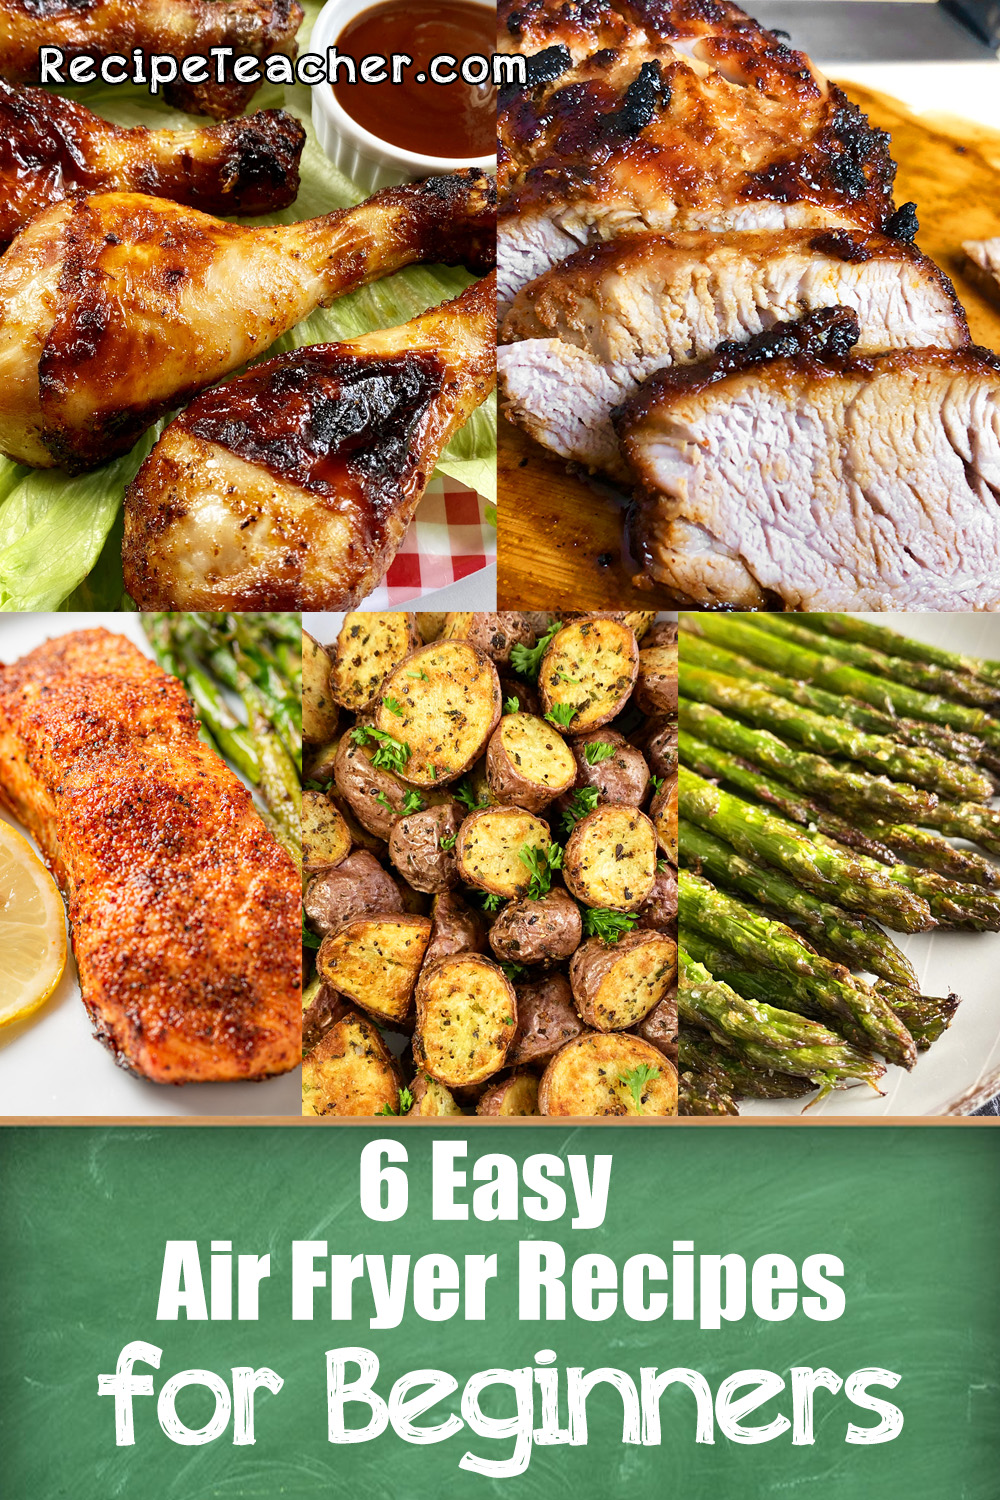 6 easy recipes for an air fryer